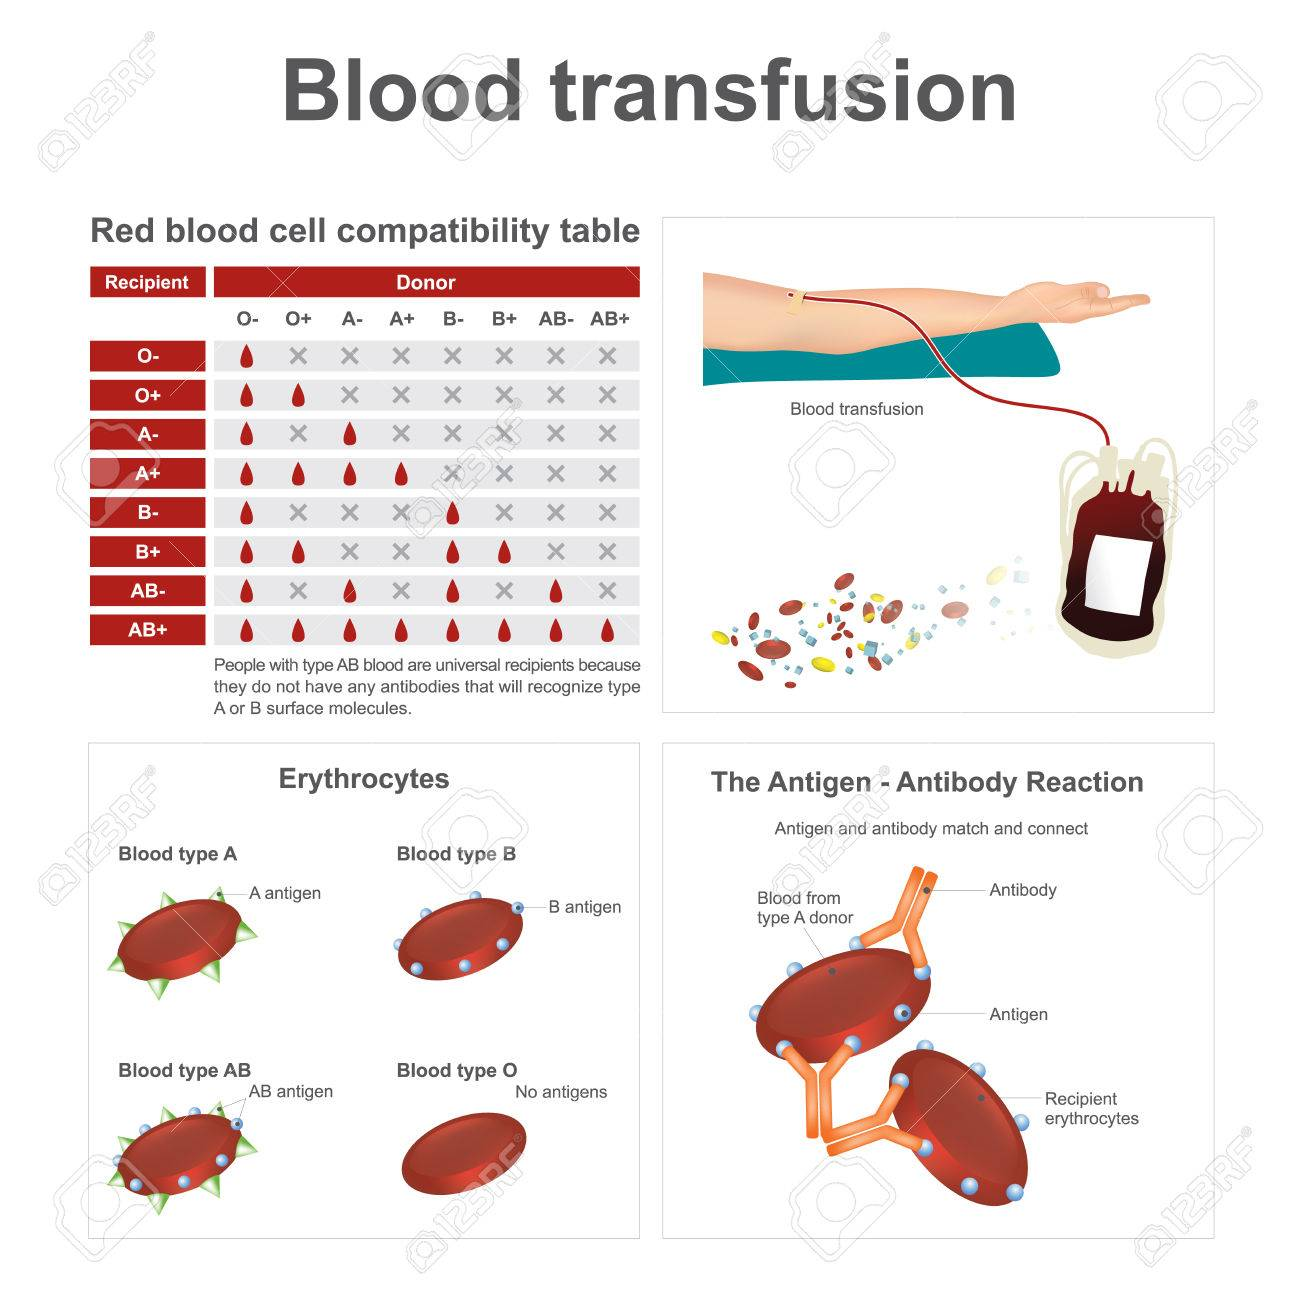 Blood types match what Blood Types